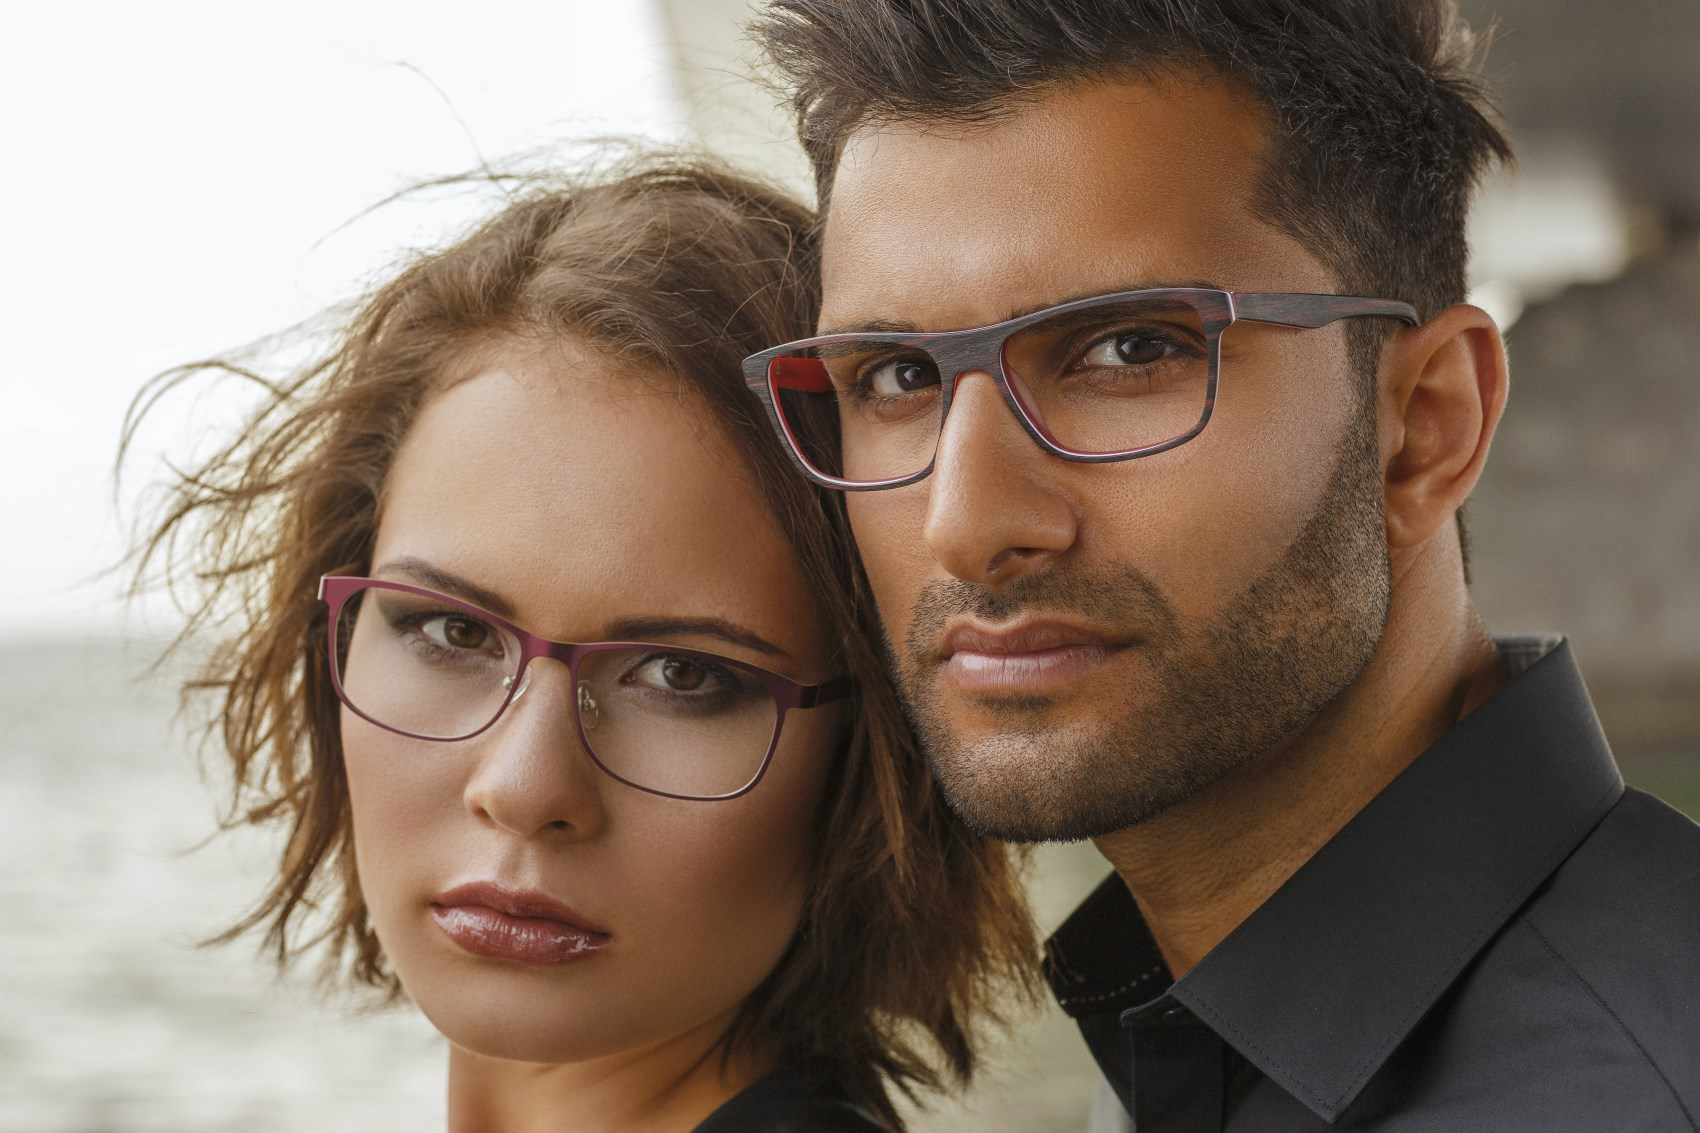 eyewear trends 2015  Top eyewear trends for 2015